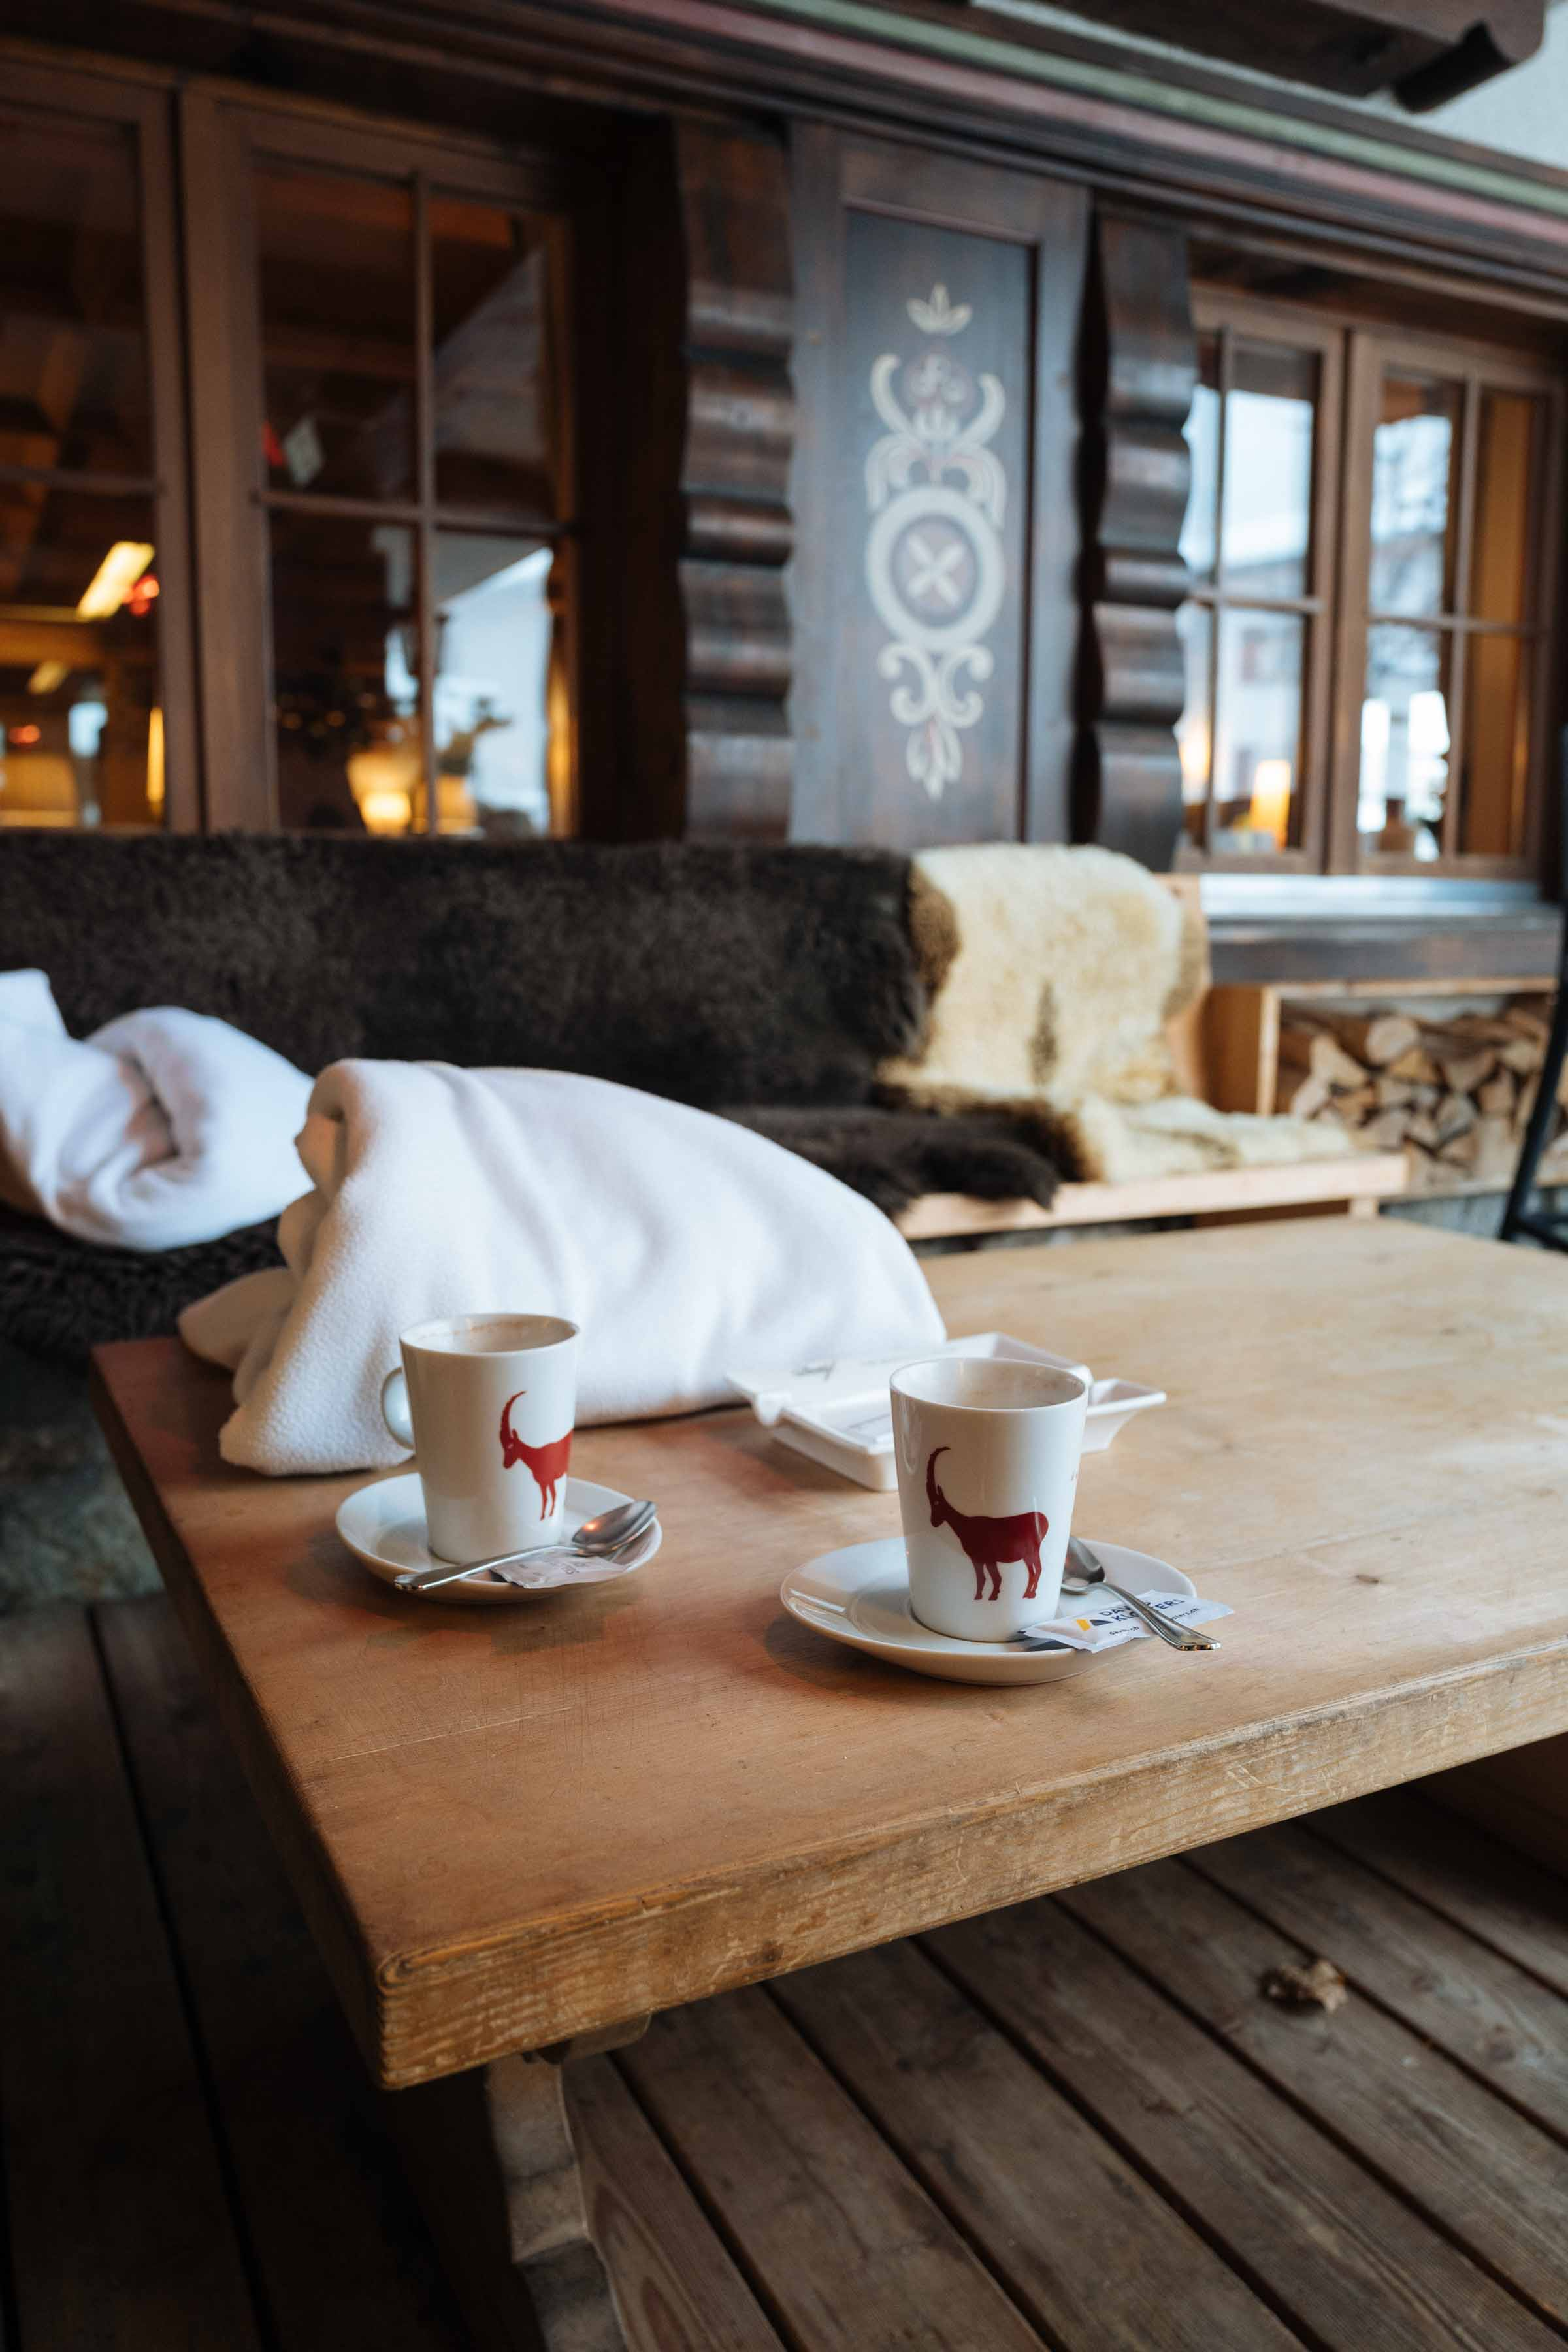 Travel to the alps in winter for a winter wonderland vacation! Cozy up with a blanket at one of these outdoor smoking lounges with heaters and sheep skins to stay warm. Order anything from the bar to enjoy or a hot chocolate while you watch the snow fall and the red Gotschnabahn cable car go up and down the mountain filled with skiers. | thetastesf.com #travel #switzerland #winter #drink